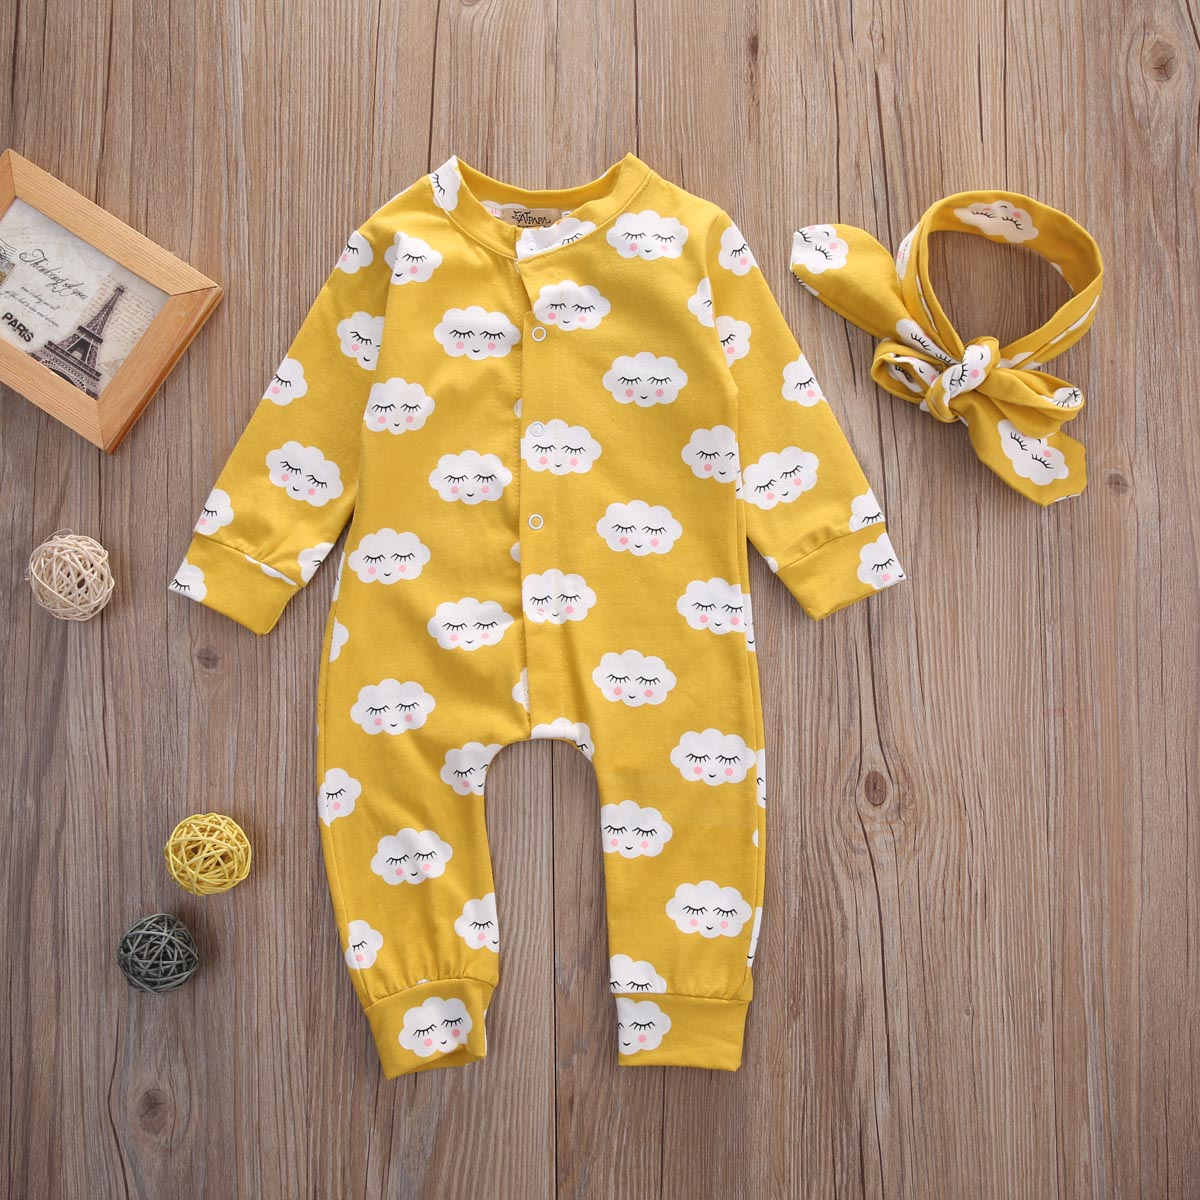 Pudcoco Baby Rompers Spring Autumn Newborn Long Sleeve Buttons Up Rompers Baby Clothes Smile Face Print Yellow in Rompers from Mother Kids